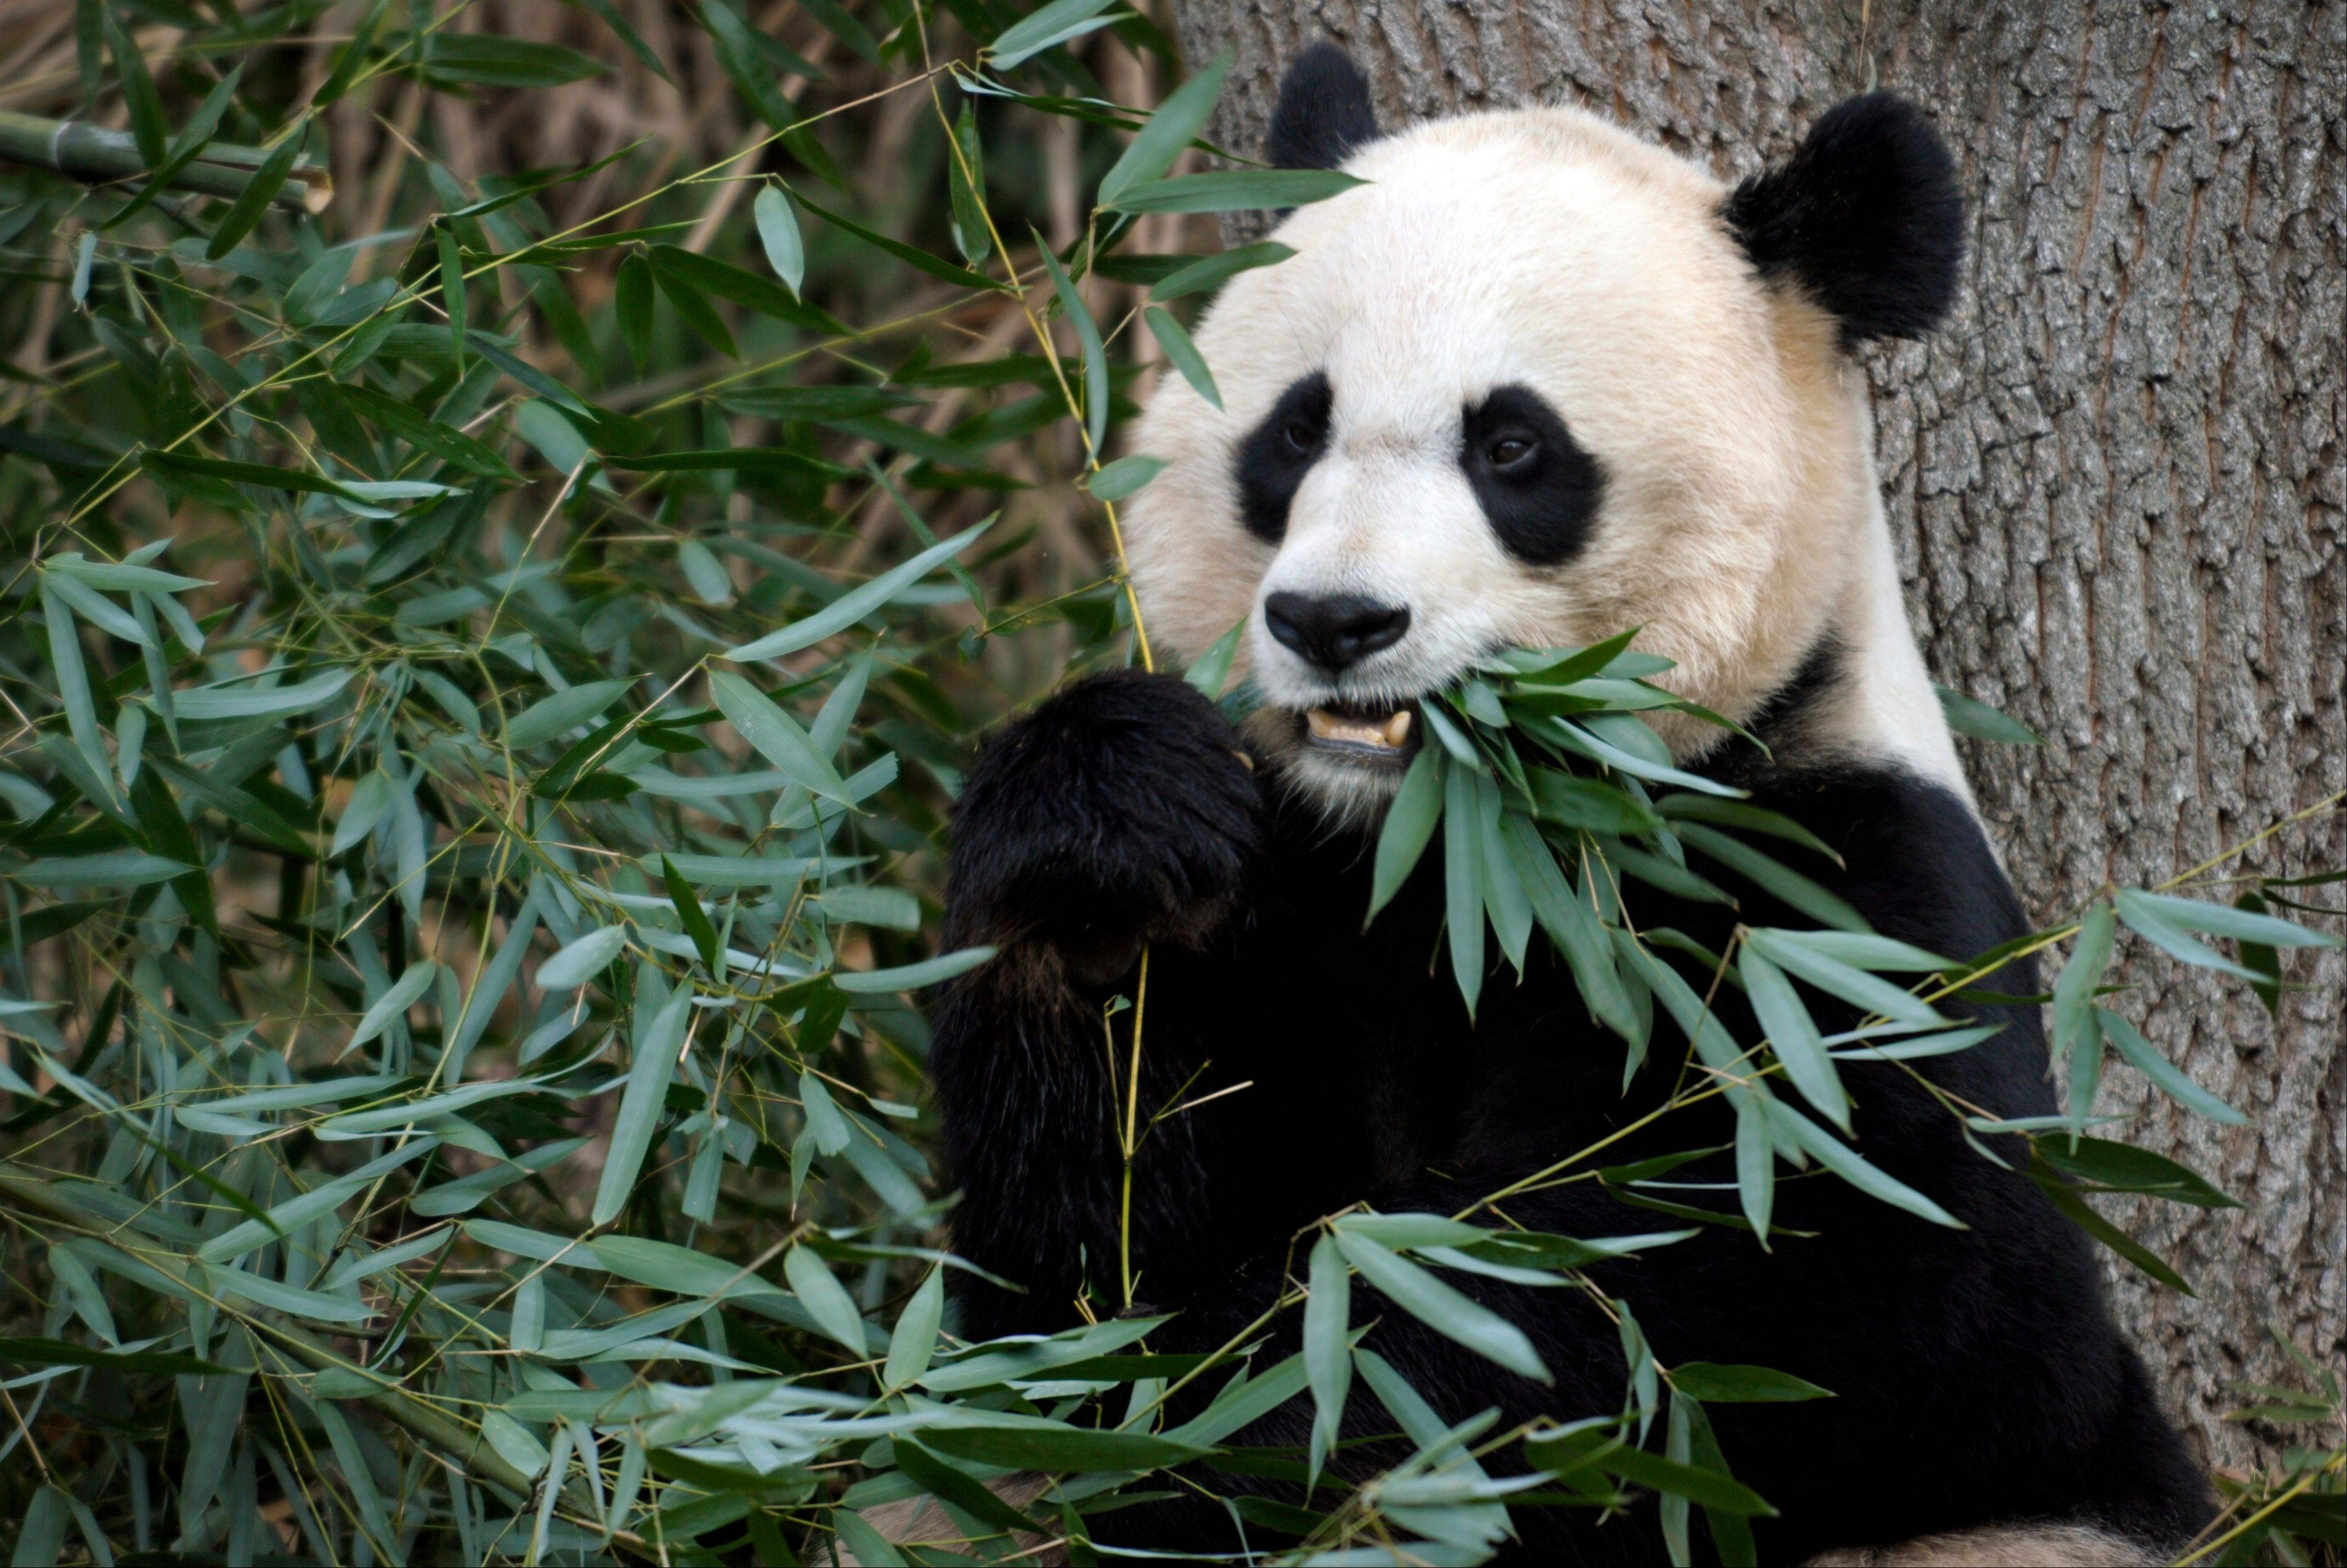 Mei Xiang, the female giant panda at the Smithsonian�s National Zoo in Washington, has given birth to a cub following five consecutive pseudopregnancies in as many years.